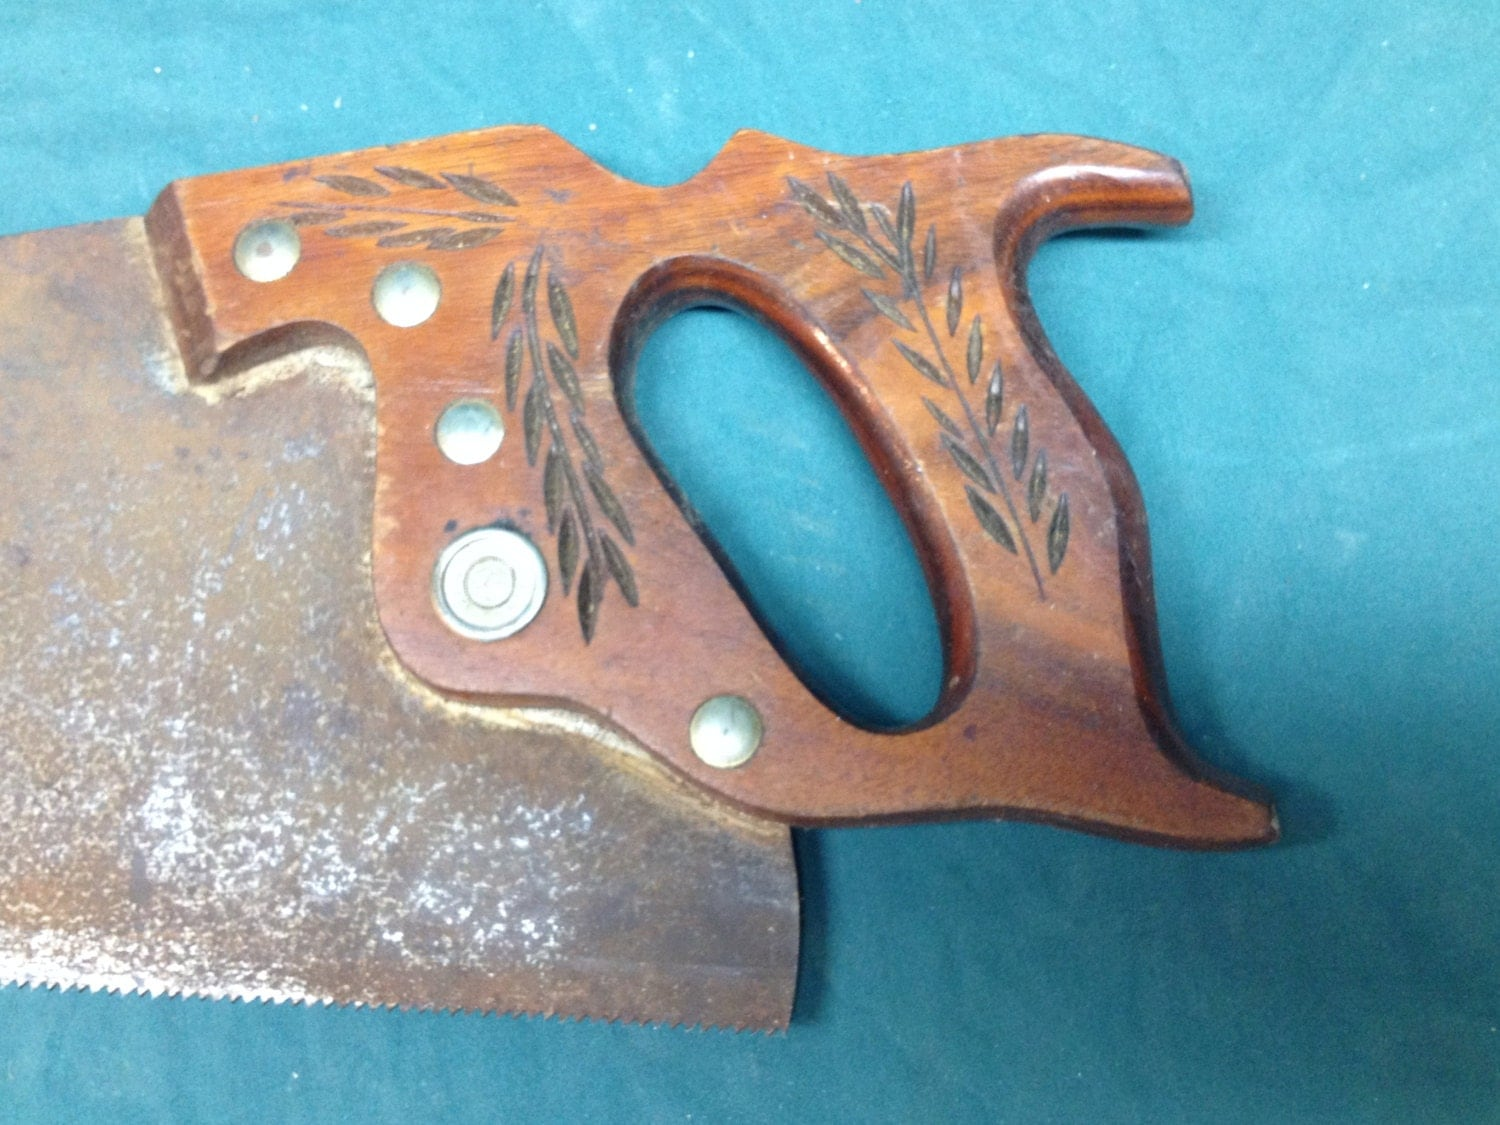 Vintage Warranted Superior Hand Saw w/Wheat Carvings Rusty